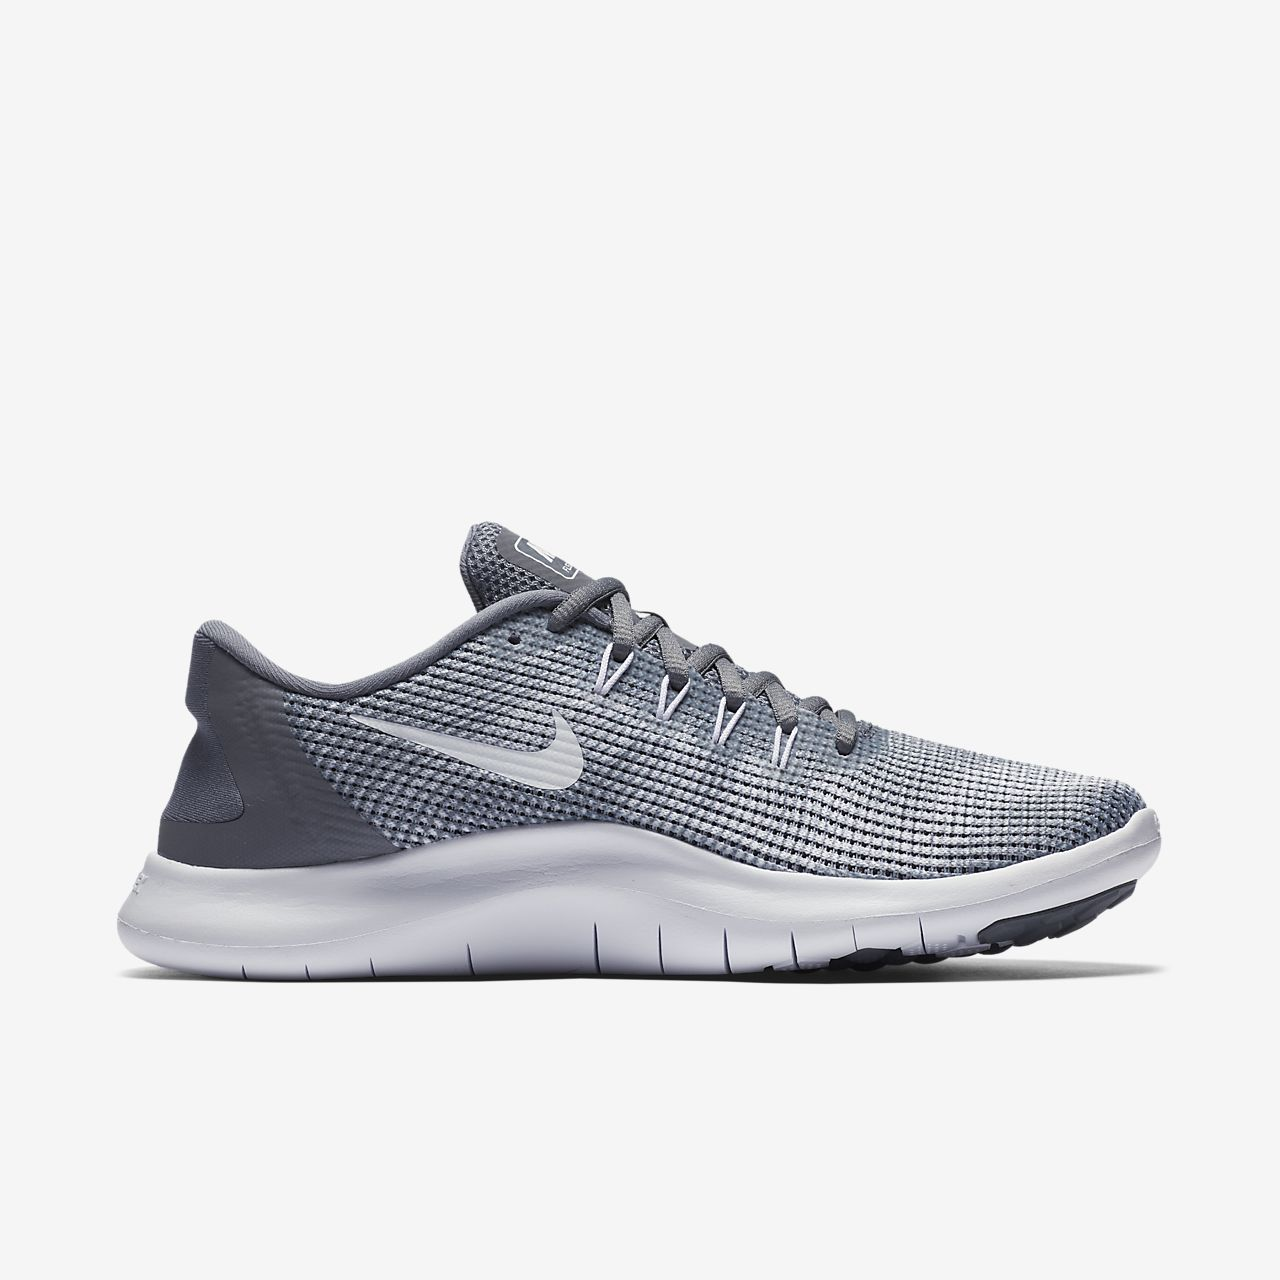 buy online c6cee 28699 ... Nike Flex RN 2018 Womens Running Shoe